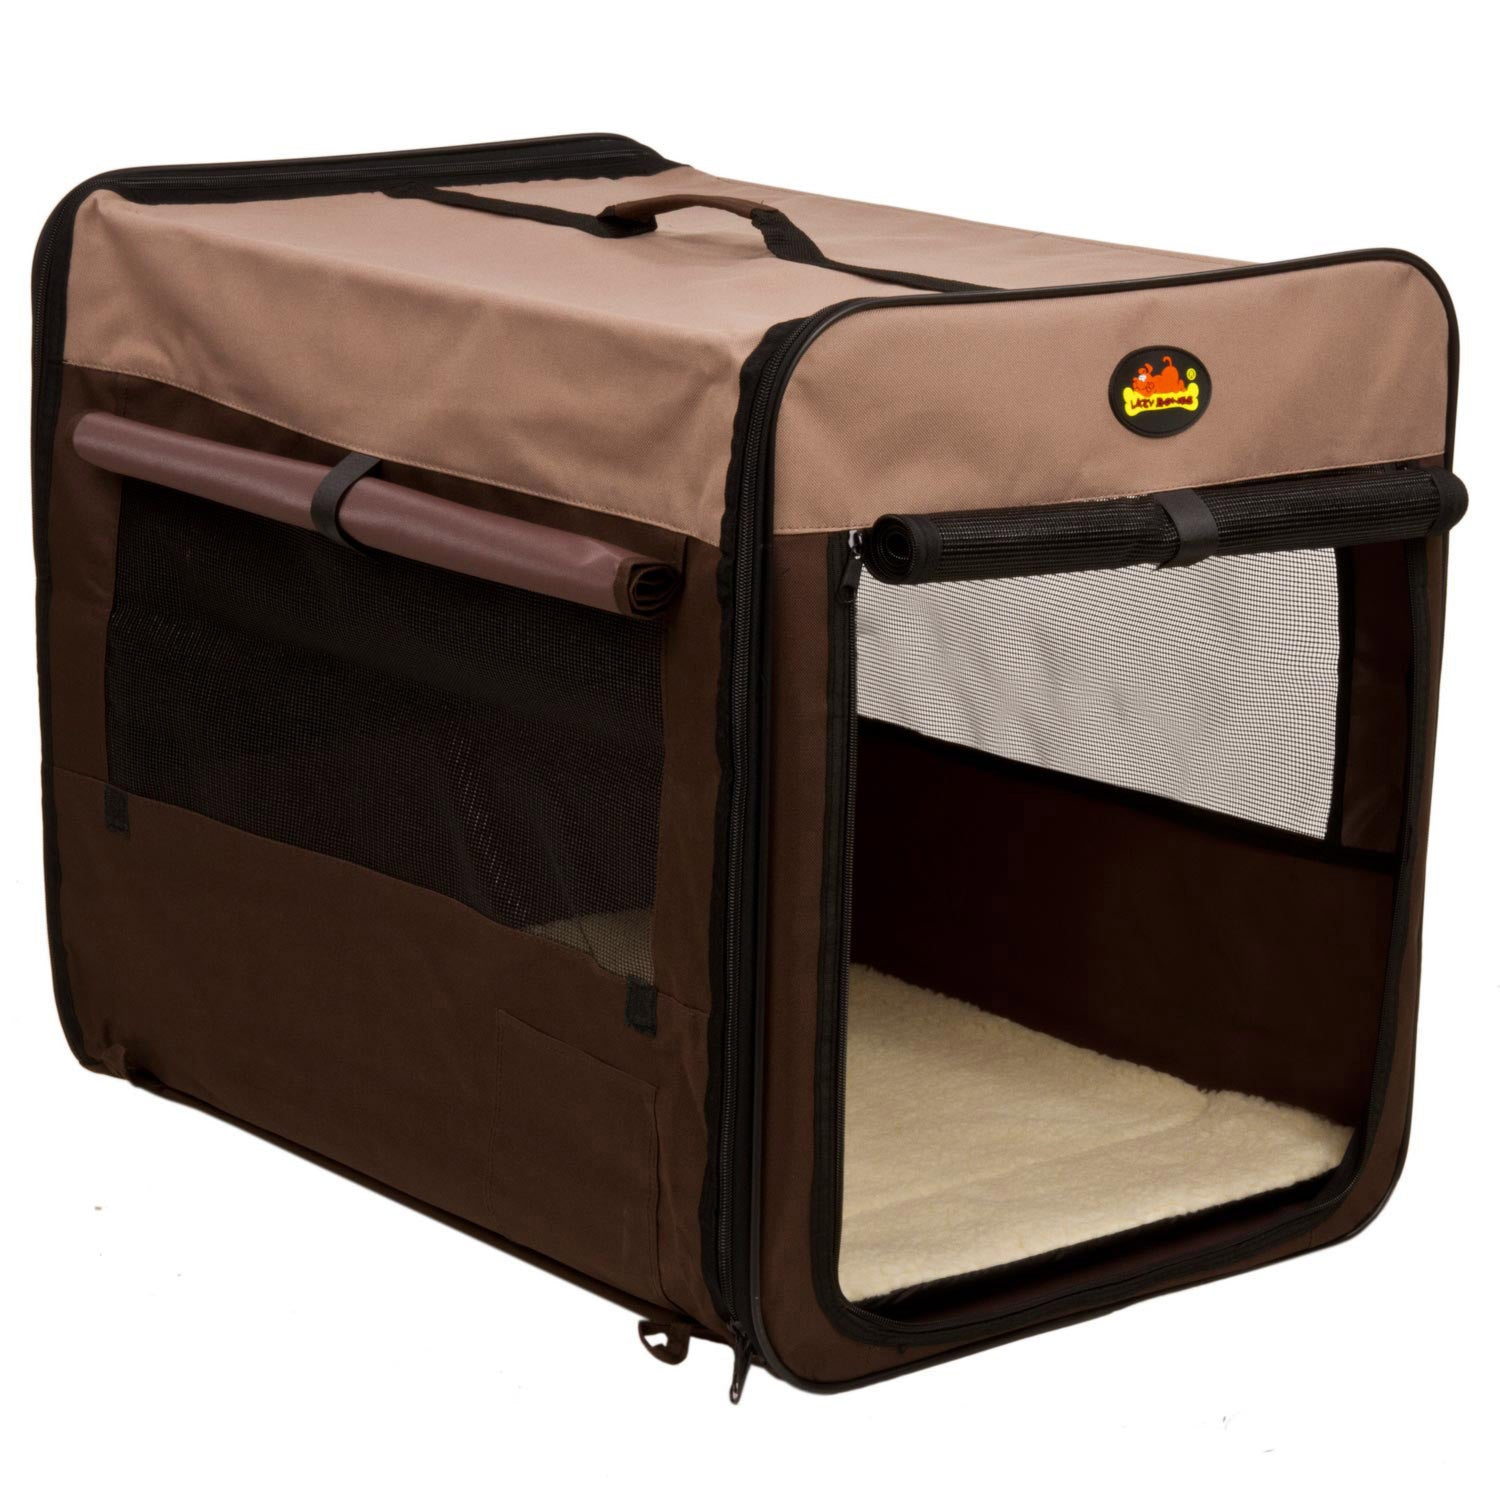 Lazy Bones Portable Pet Home